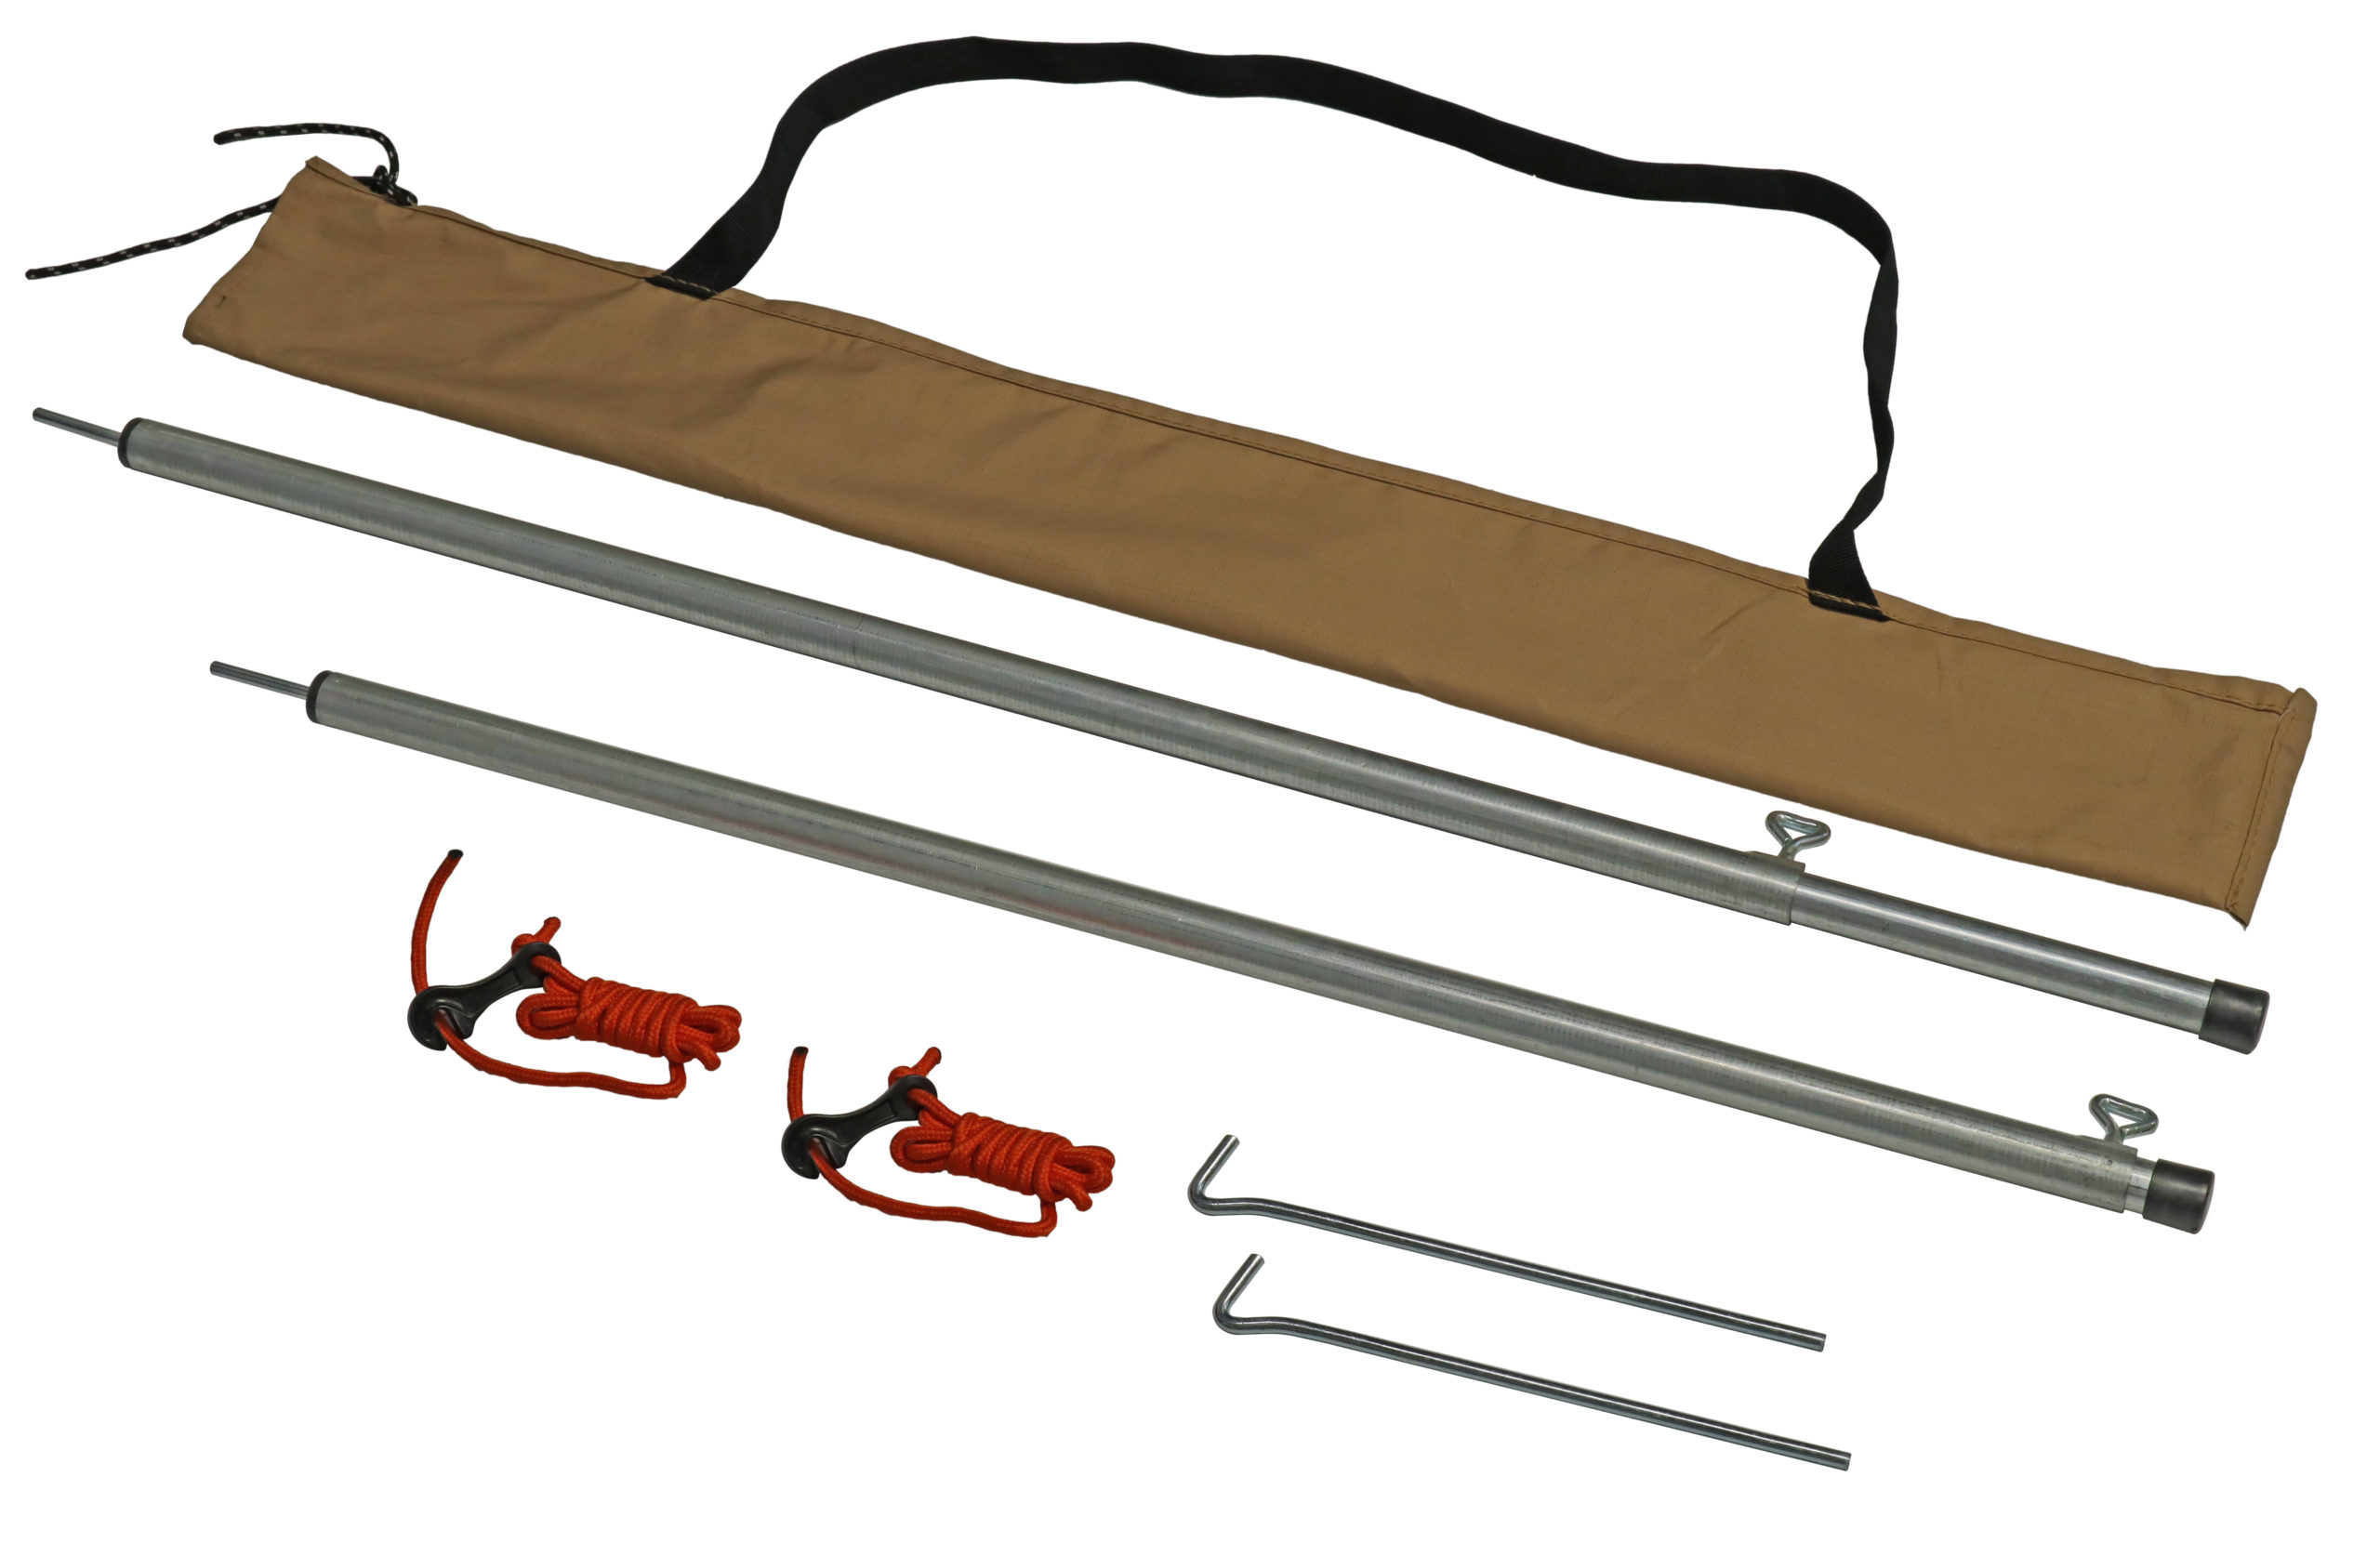 Awning pole set